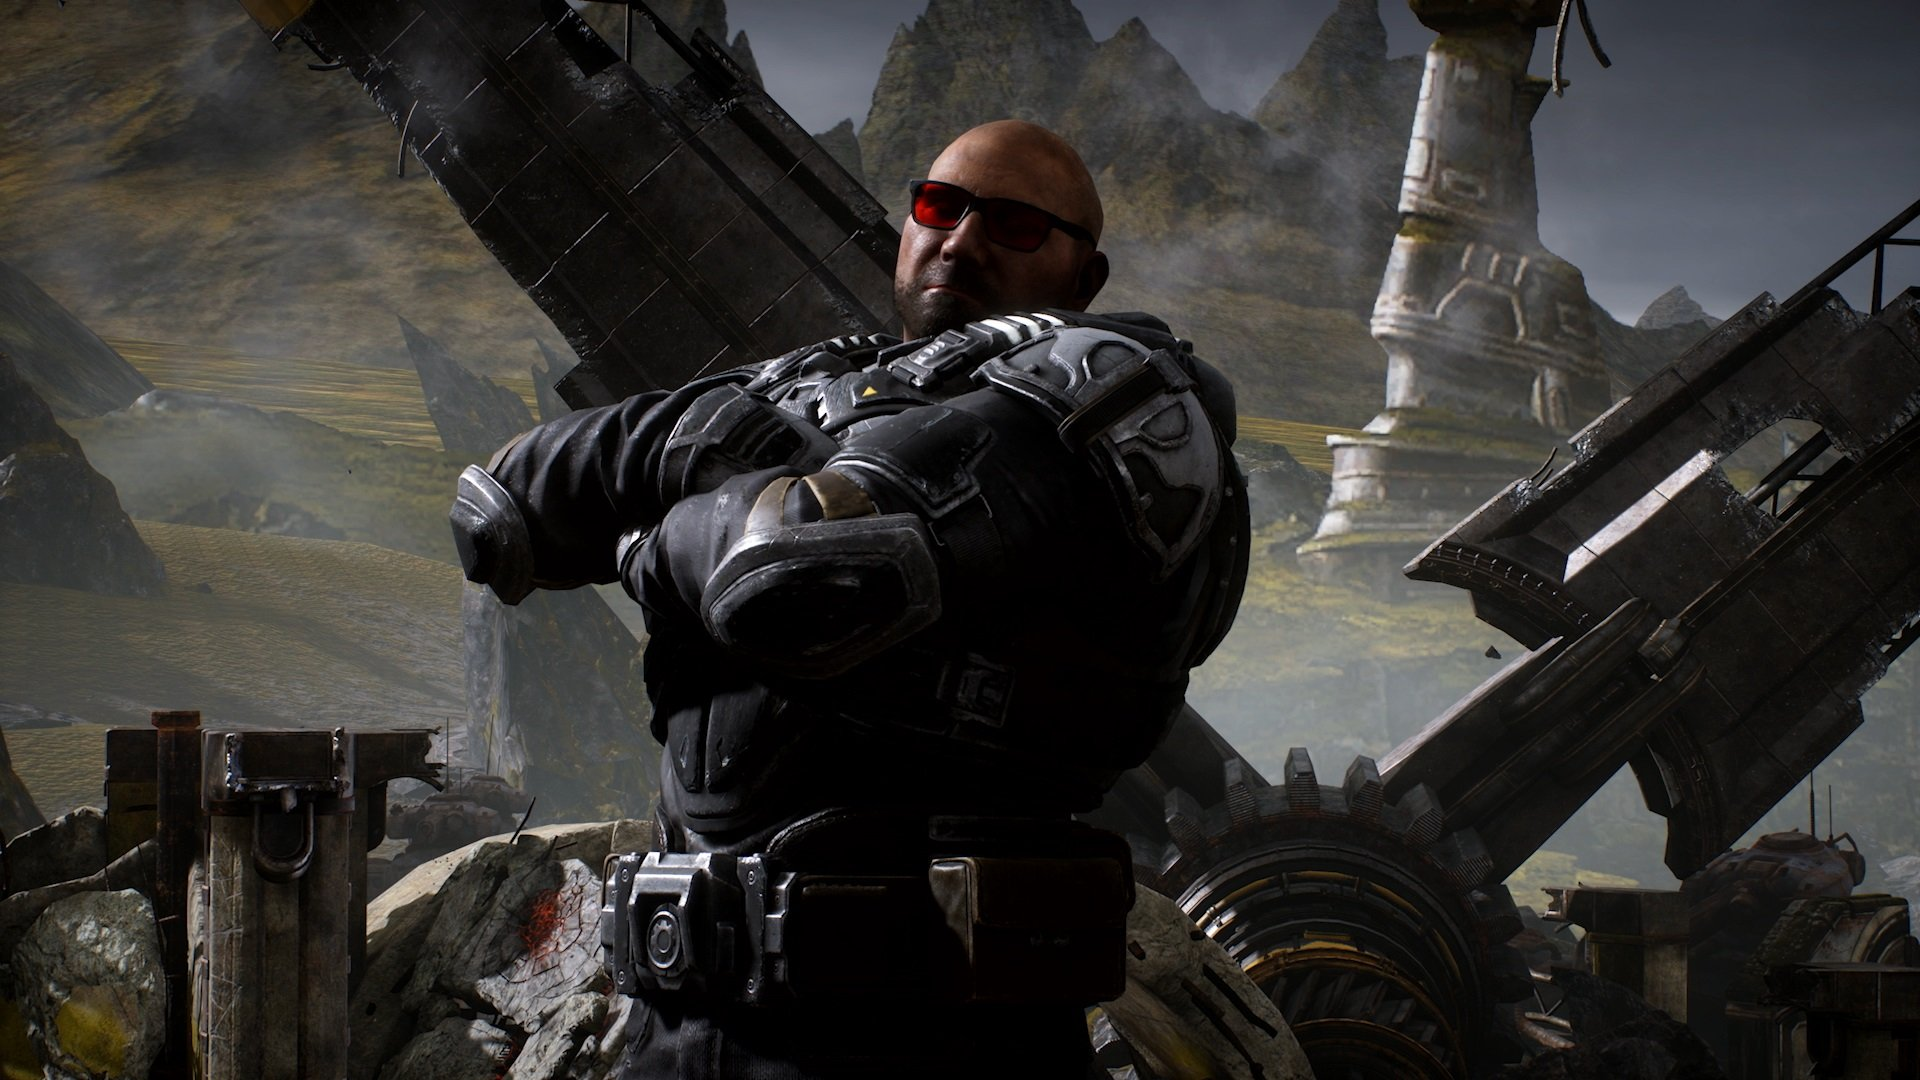 The Batista Bomb is the most incredible Gears 5 execution